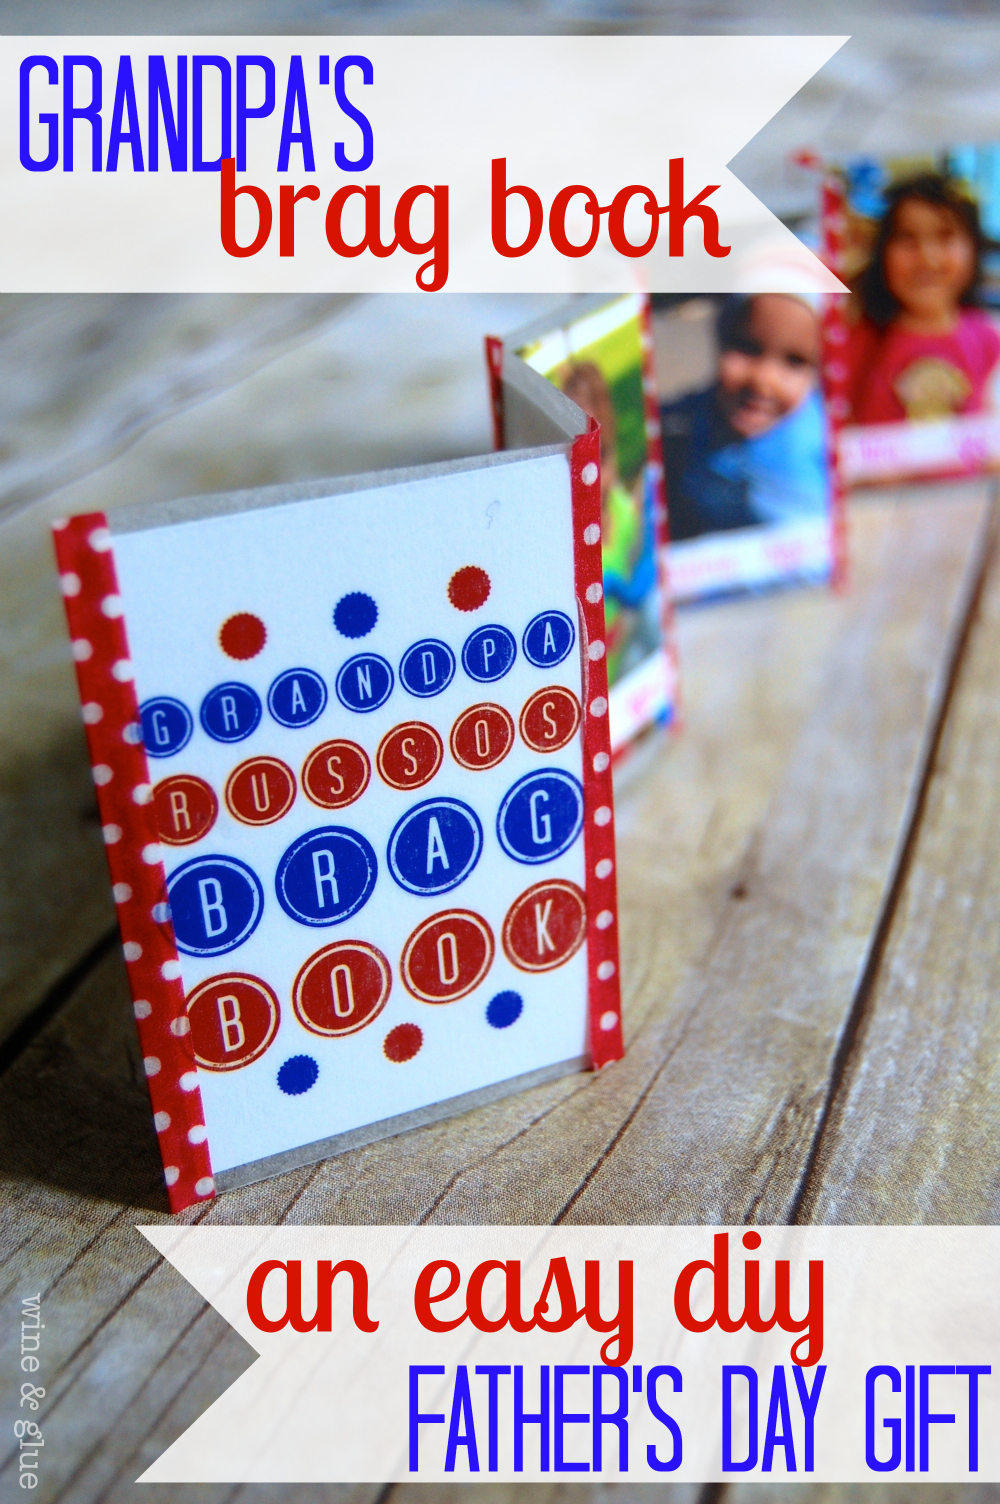 Here's a homemade Father's Day gift idea -- great for toddlers through early grade schoolers. One thing I enjoy doing with my kids is having them make personalized books as gifts. So a few years ago I made a template that each of them could complete - according to their own ability. Each year I republish the post during the week of Father's Day.